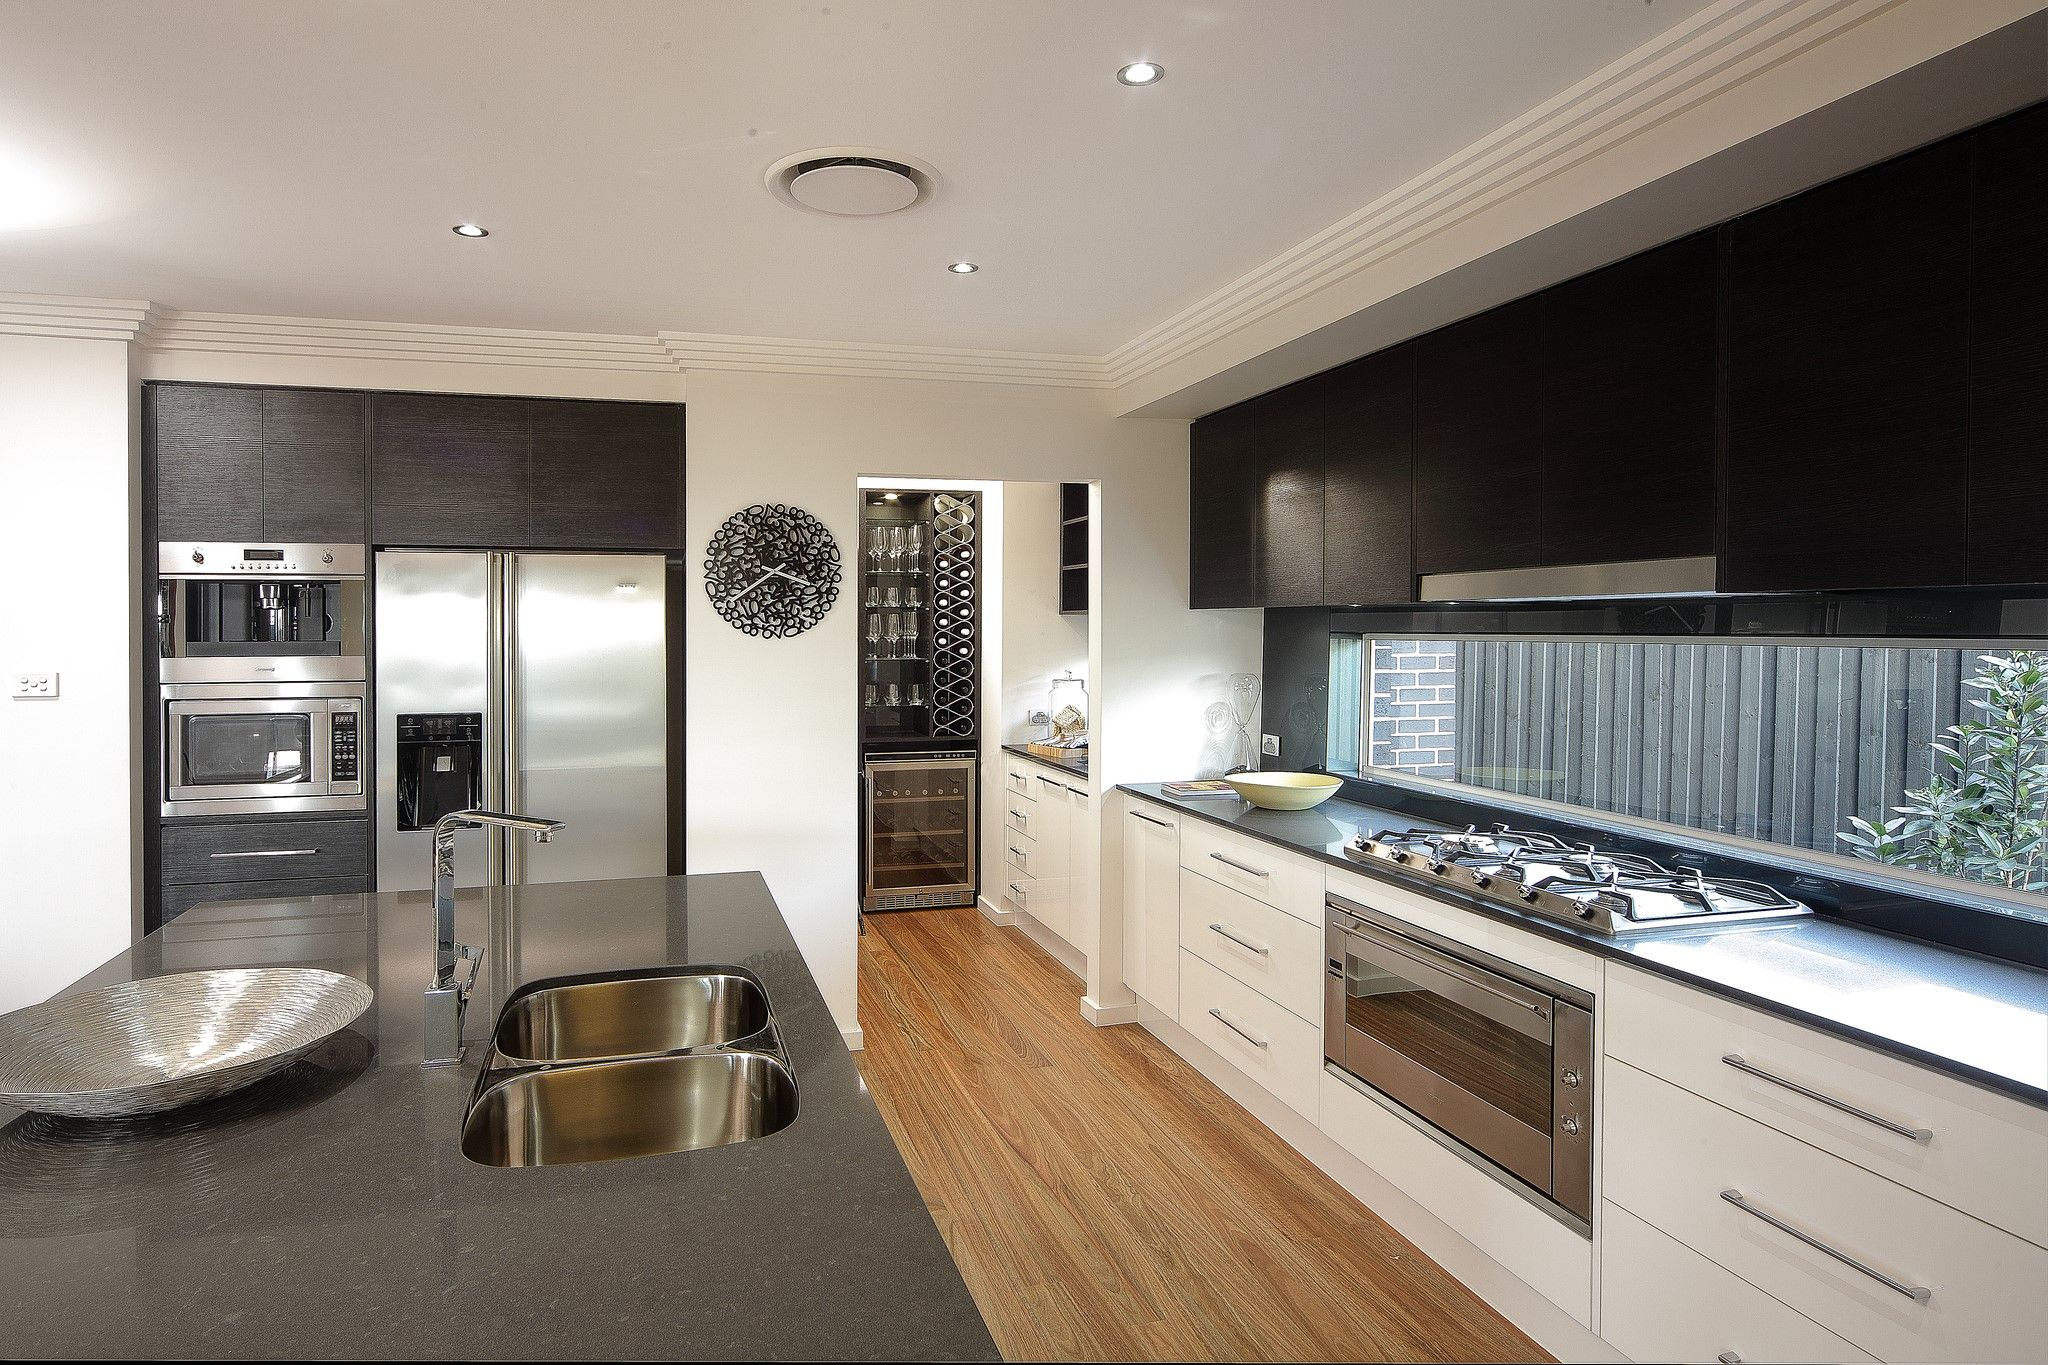 9 Kitchen Design Ideas to Create the Ultimate Entertainer's ...